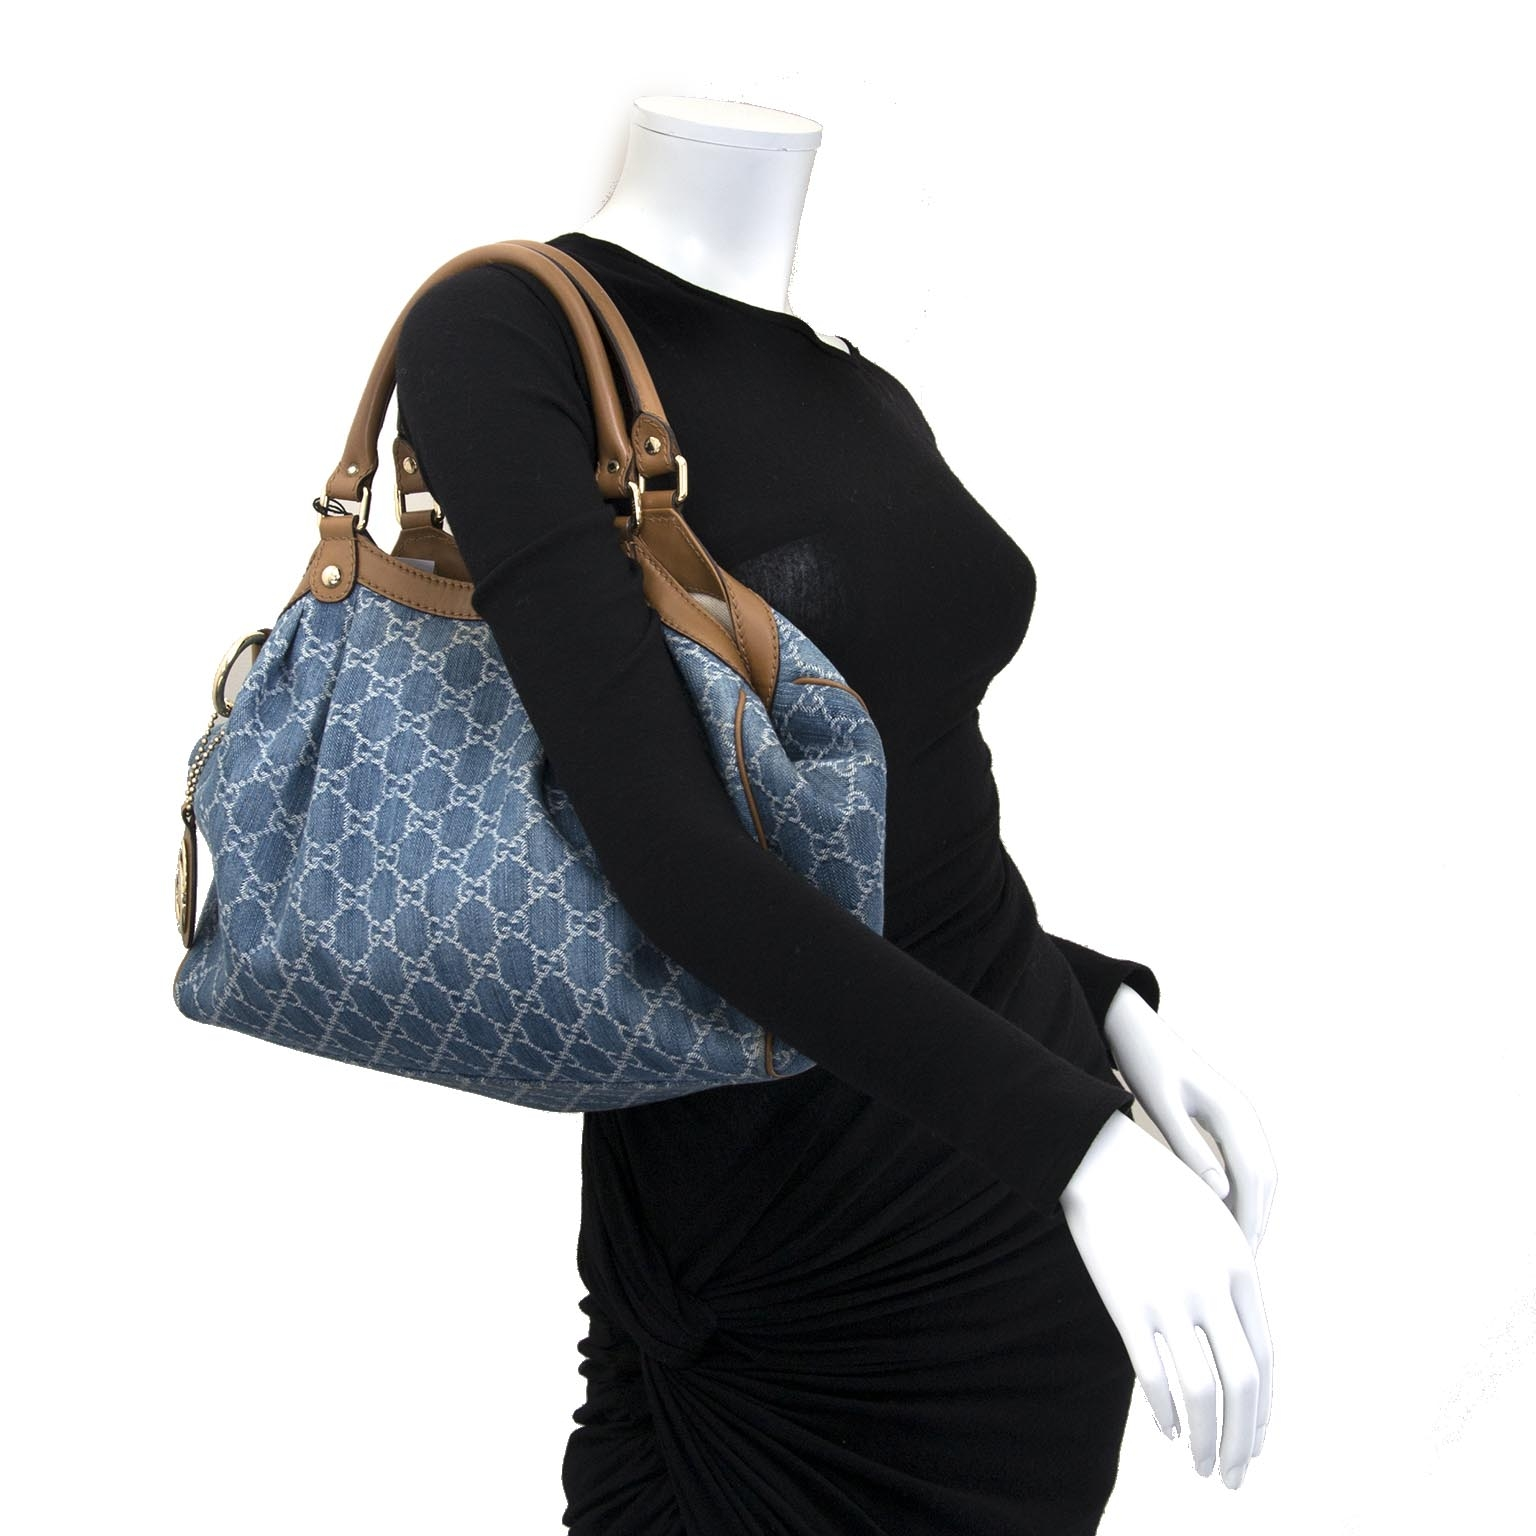 gucci blue monogram guccissima denim sukey tote bag now for sale at labellov vintage fashion webshop belgium